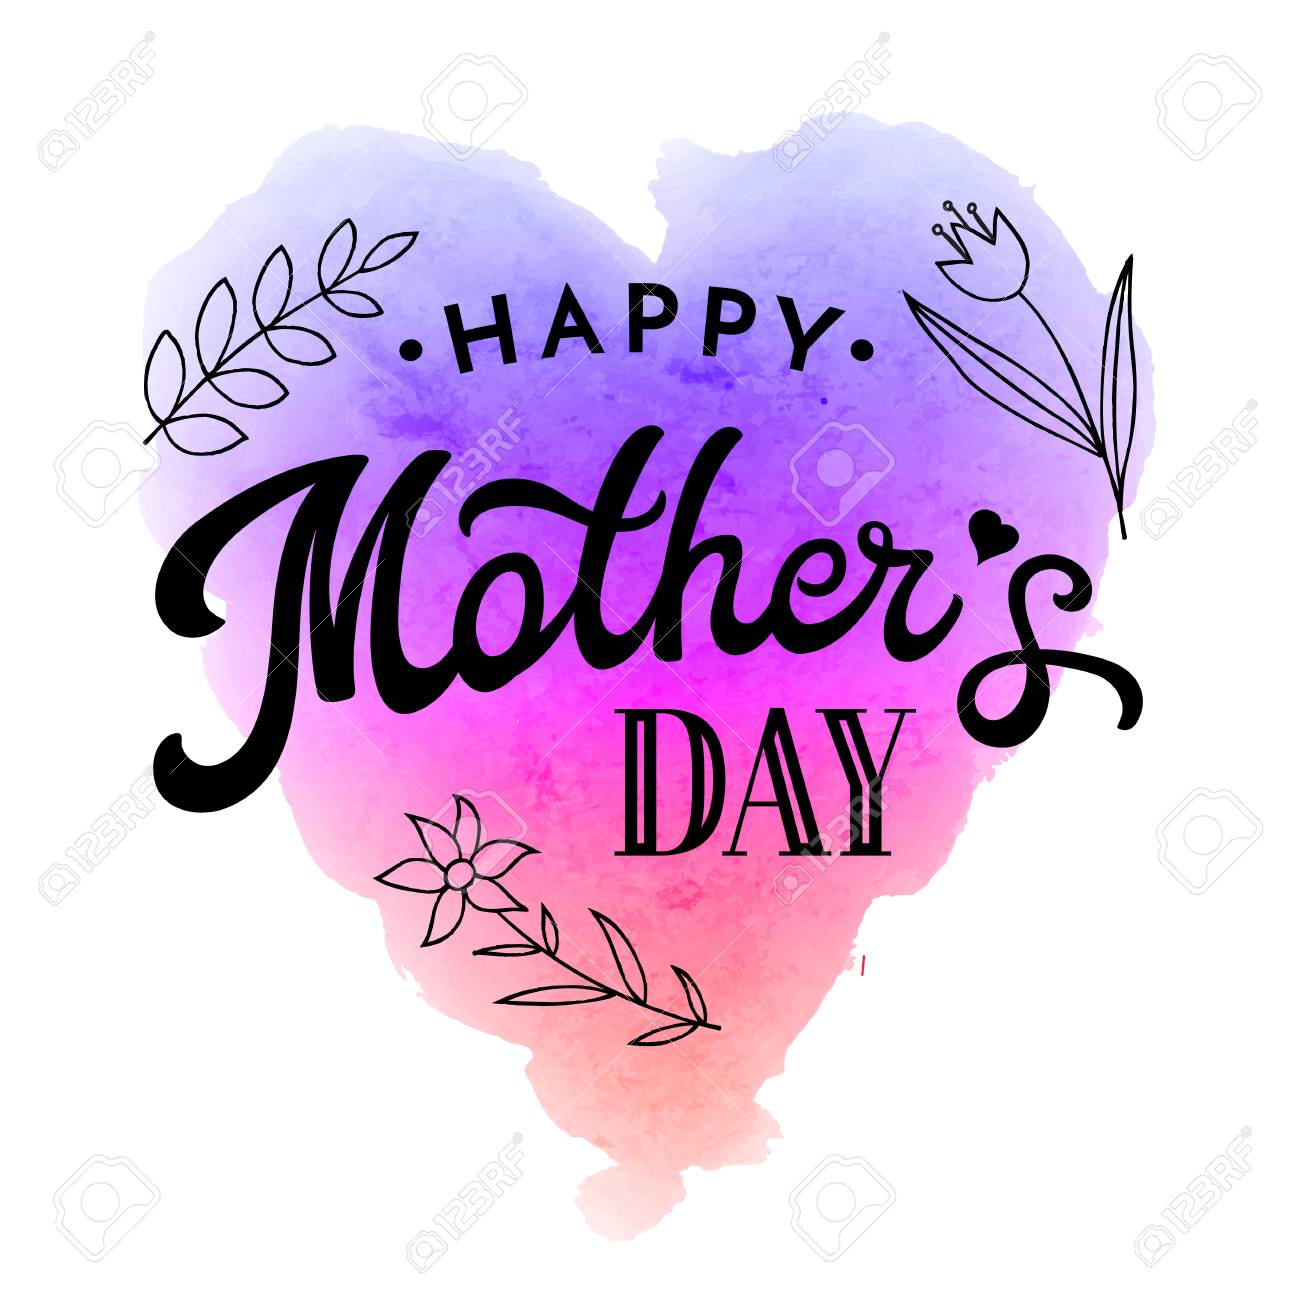 Happy mothers day greeting card with flower and black hand happy mothers day greeting card with flower and black hand lettering text on rainbow abstract kristyandbryce Choice Image